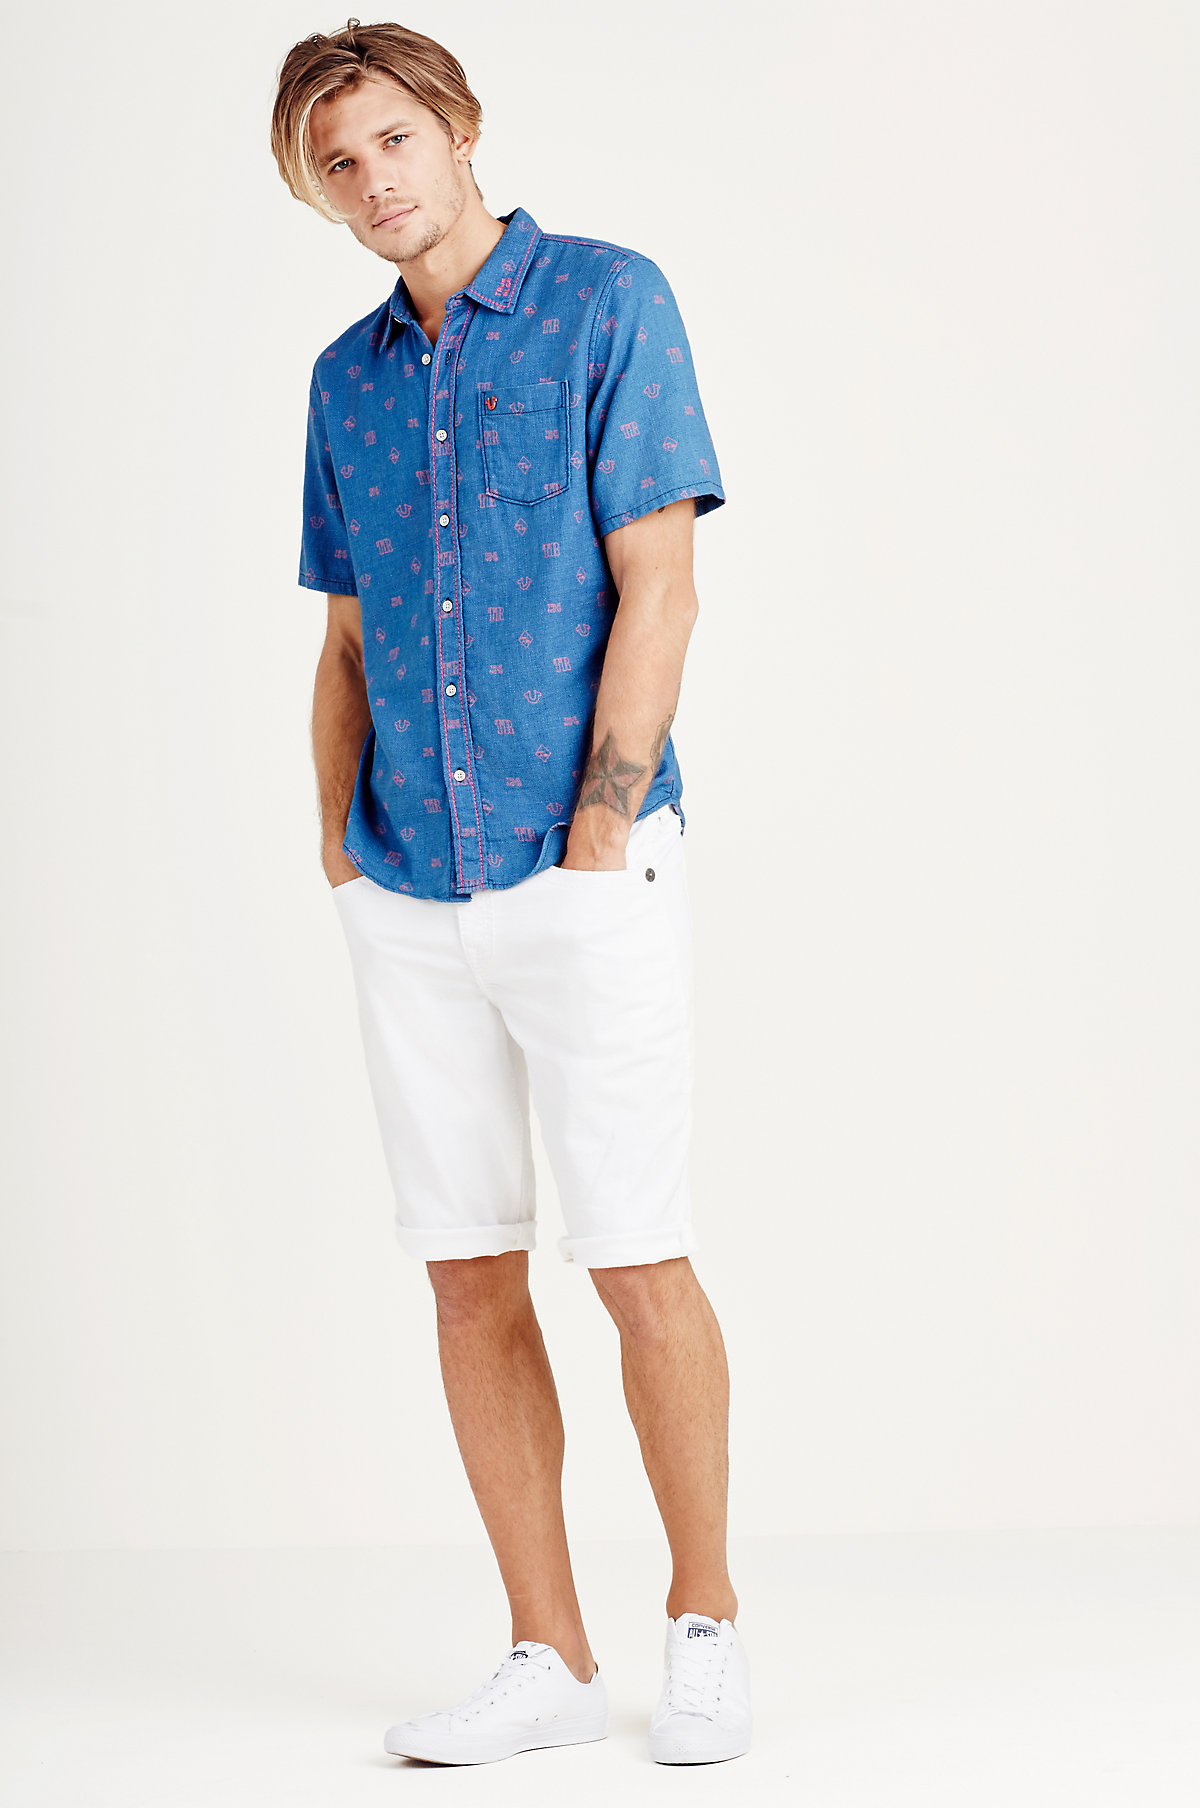 True-Religion-Men-039-s-Short-Sleeve-Button-Up-Woven-Shirt thumbnail 4